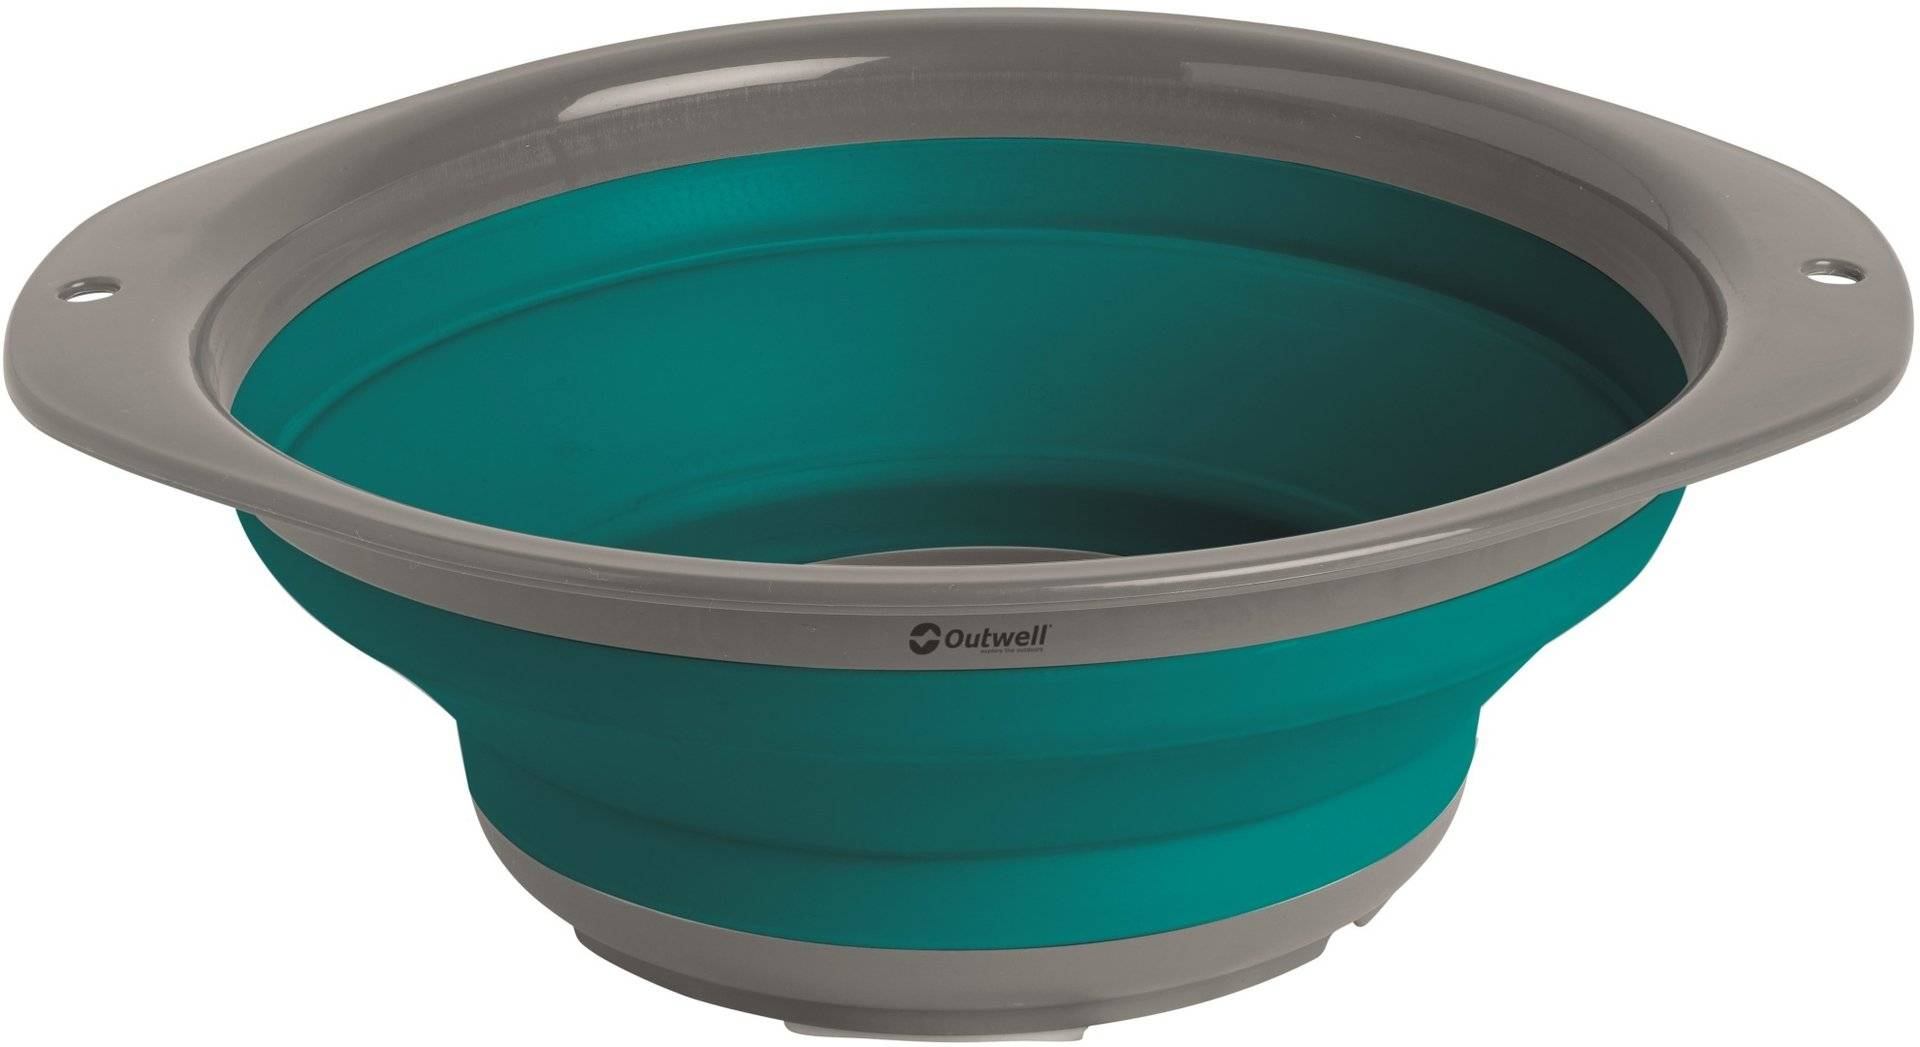 Outwell Collaps L Bowl Blue L